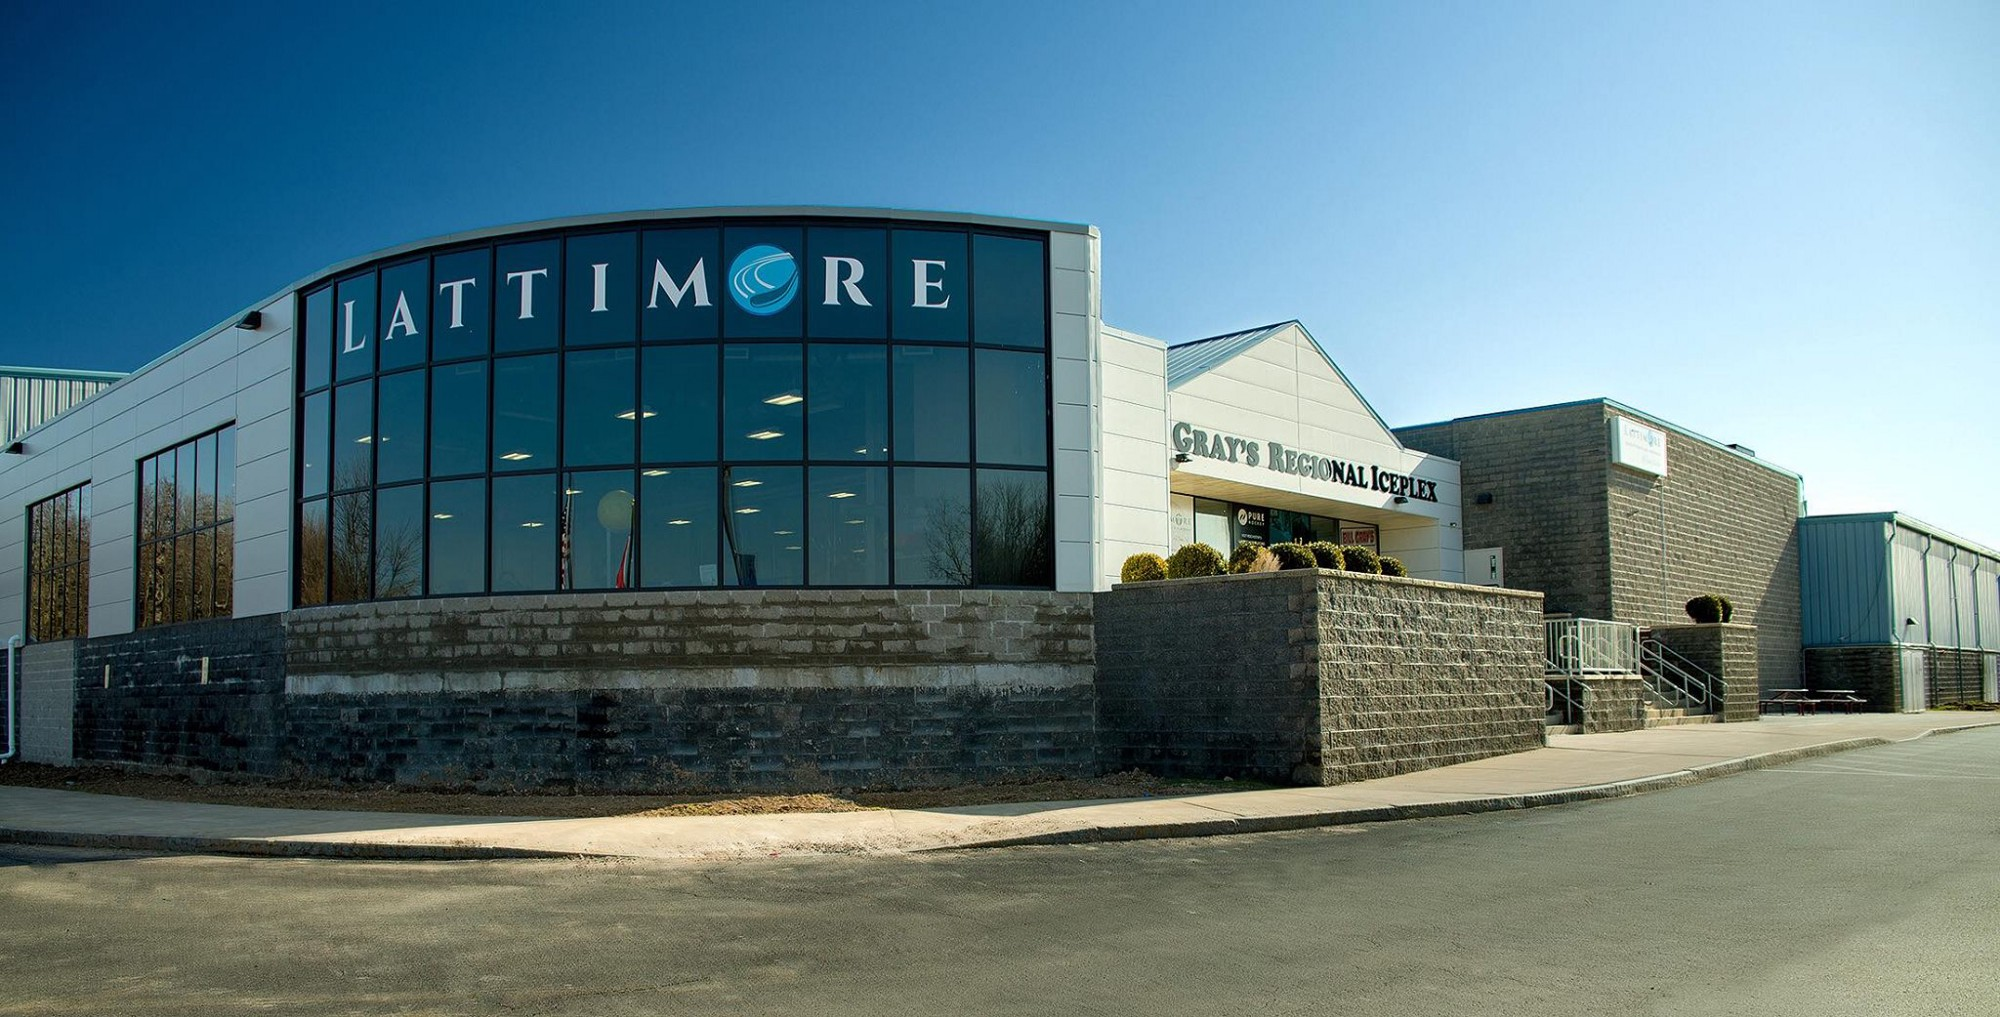 Lattimore PT at the Bill Gray's Iceplex and Lattimore PT North Chili have turned 1 year old!